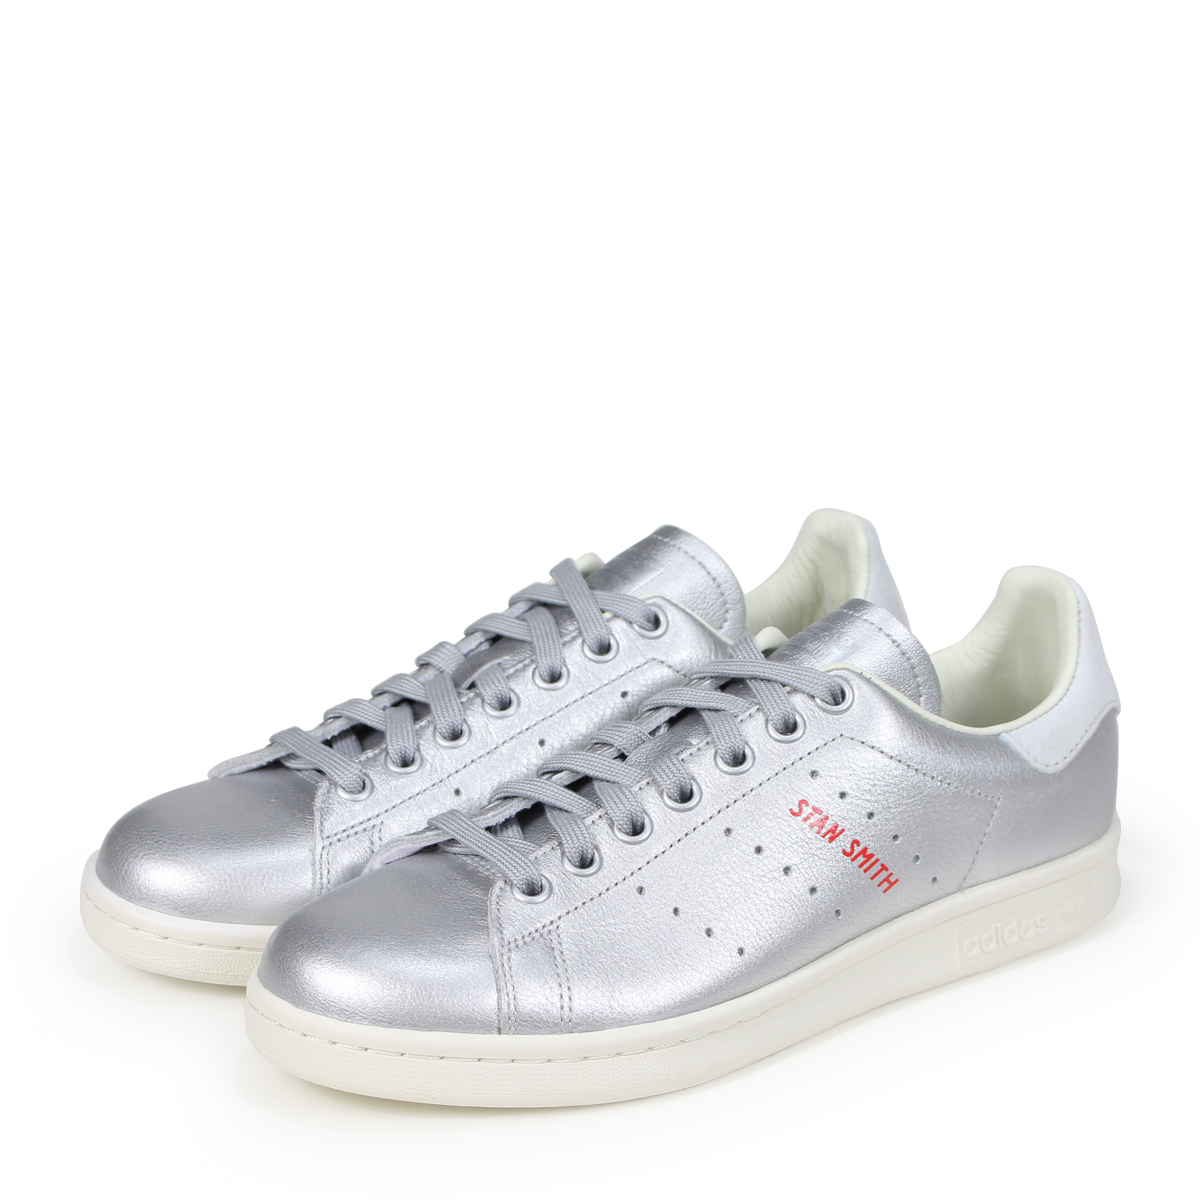 new arrival ab1d3 78473 adidas Originals STAN SMITH W Adidas originals Stan Smith Lady s sneakers  B41750 silver  load planned ...